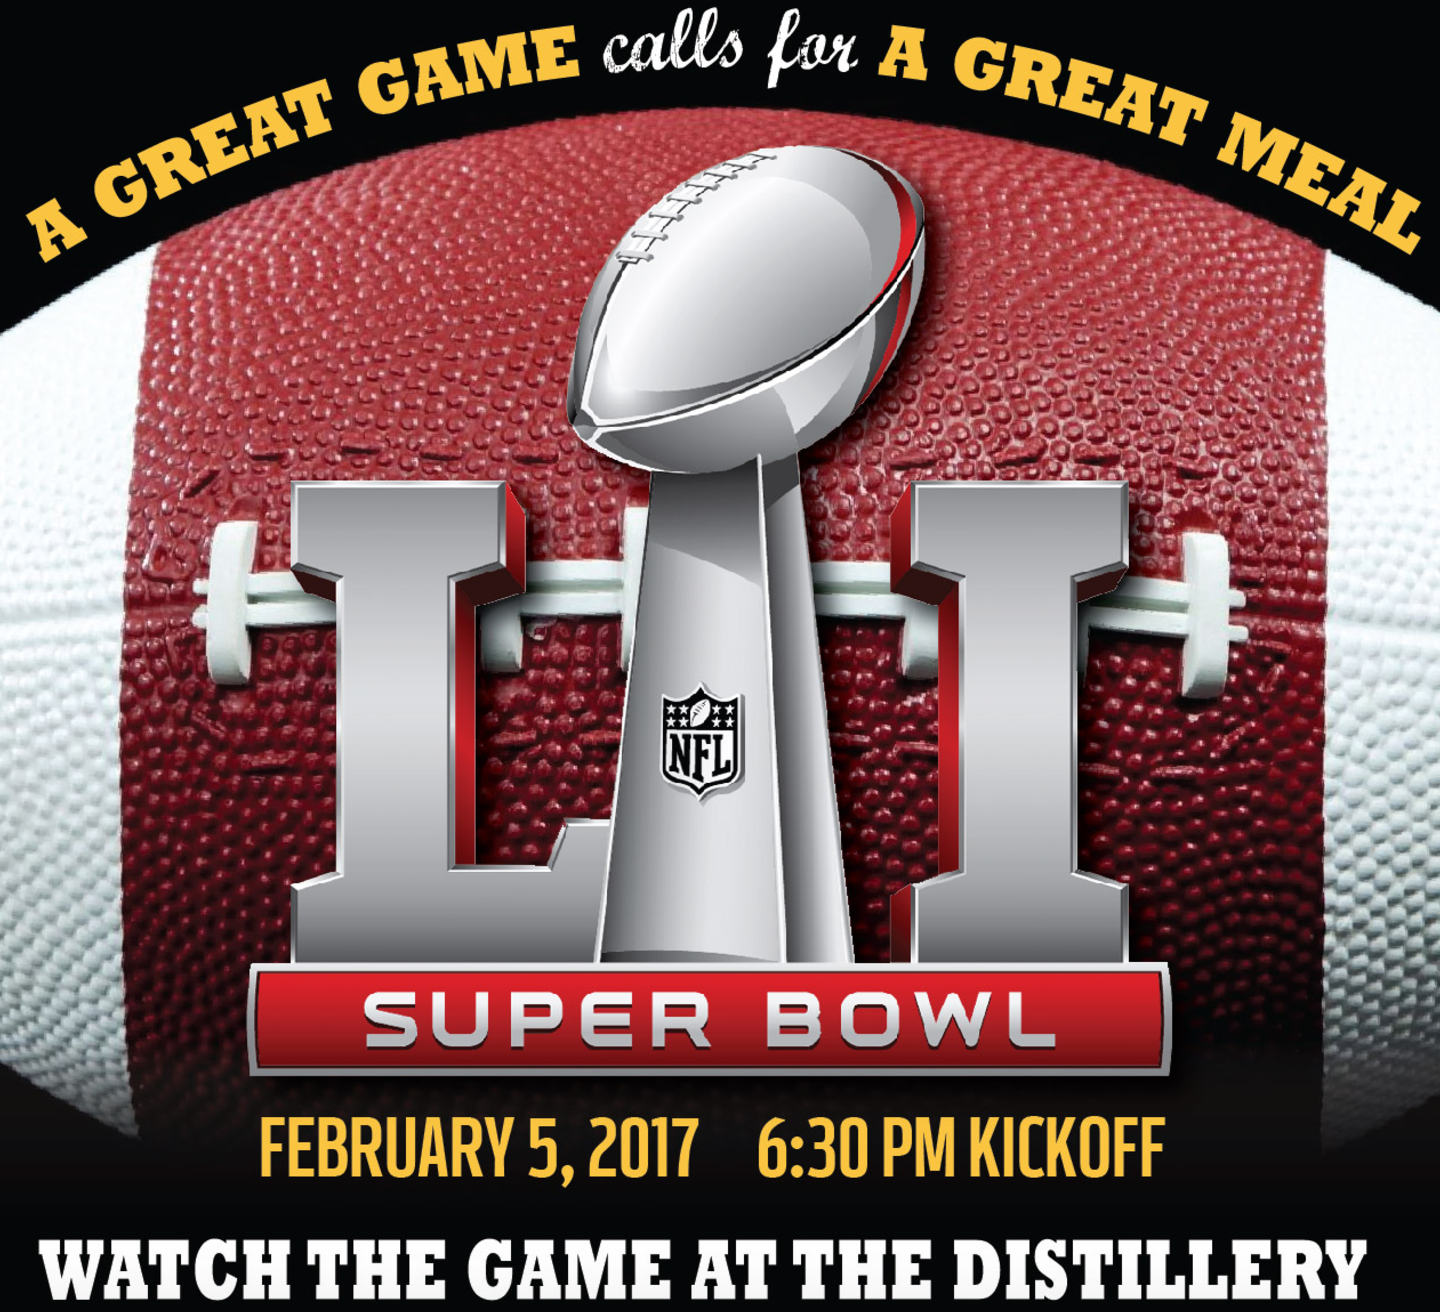 Super Bowl Freebie Upstate Ny Distillery Restaurants Give Away